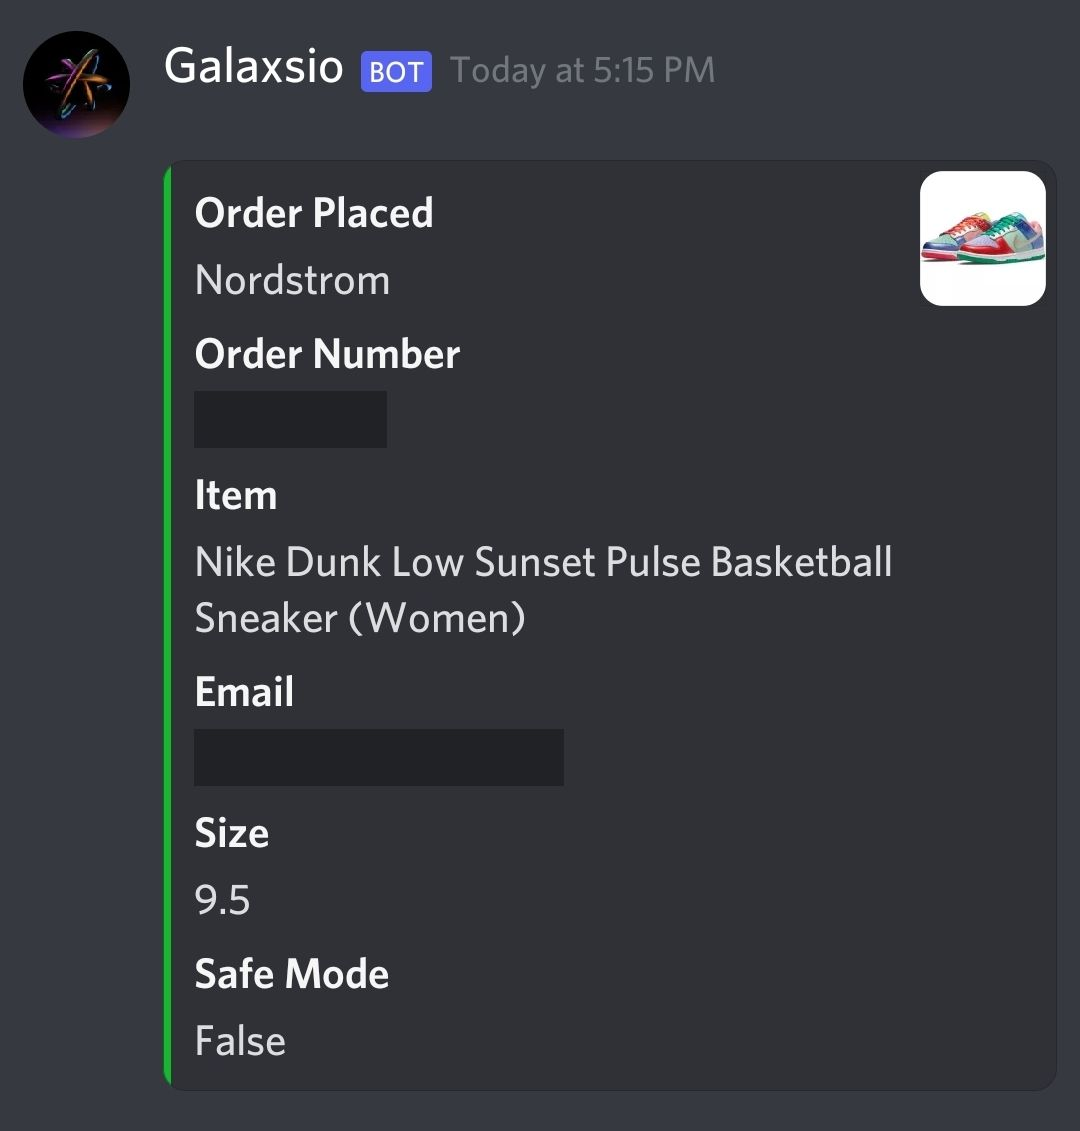 Success from silverback in @Galaxsio https://t.co/ocr3C9bBtL